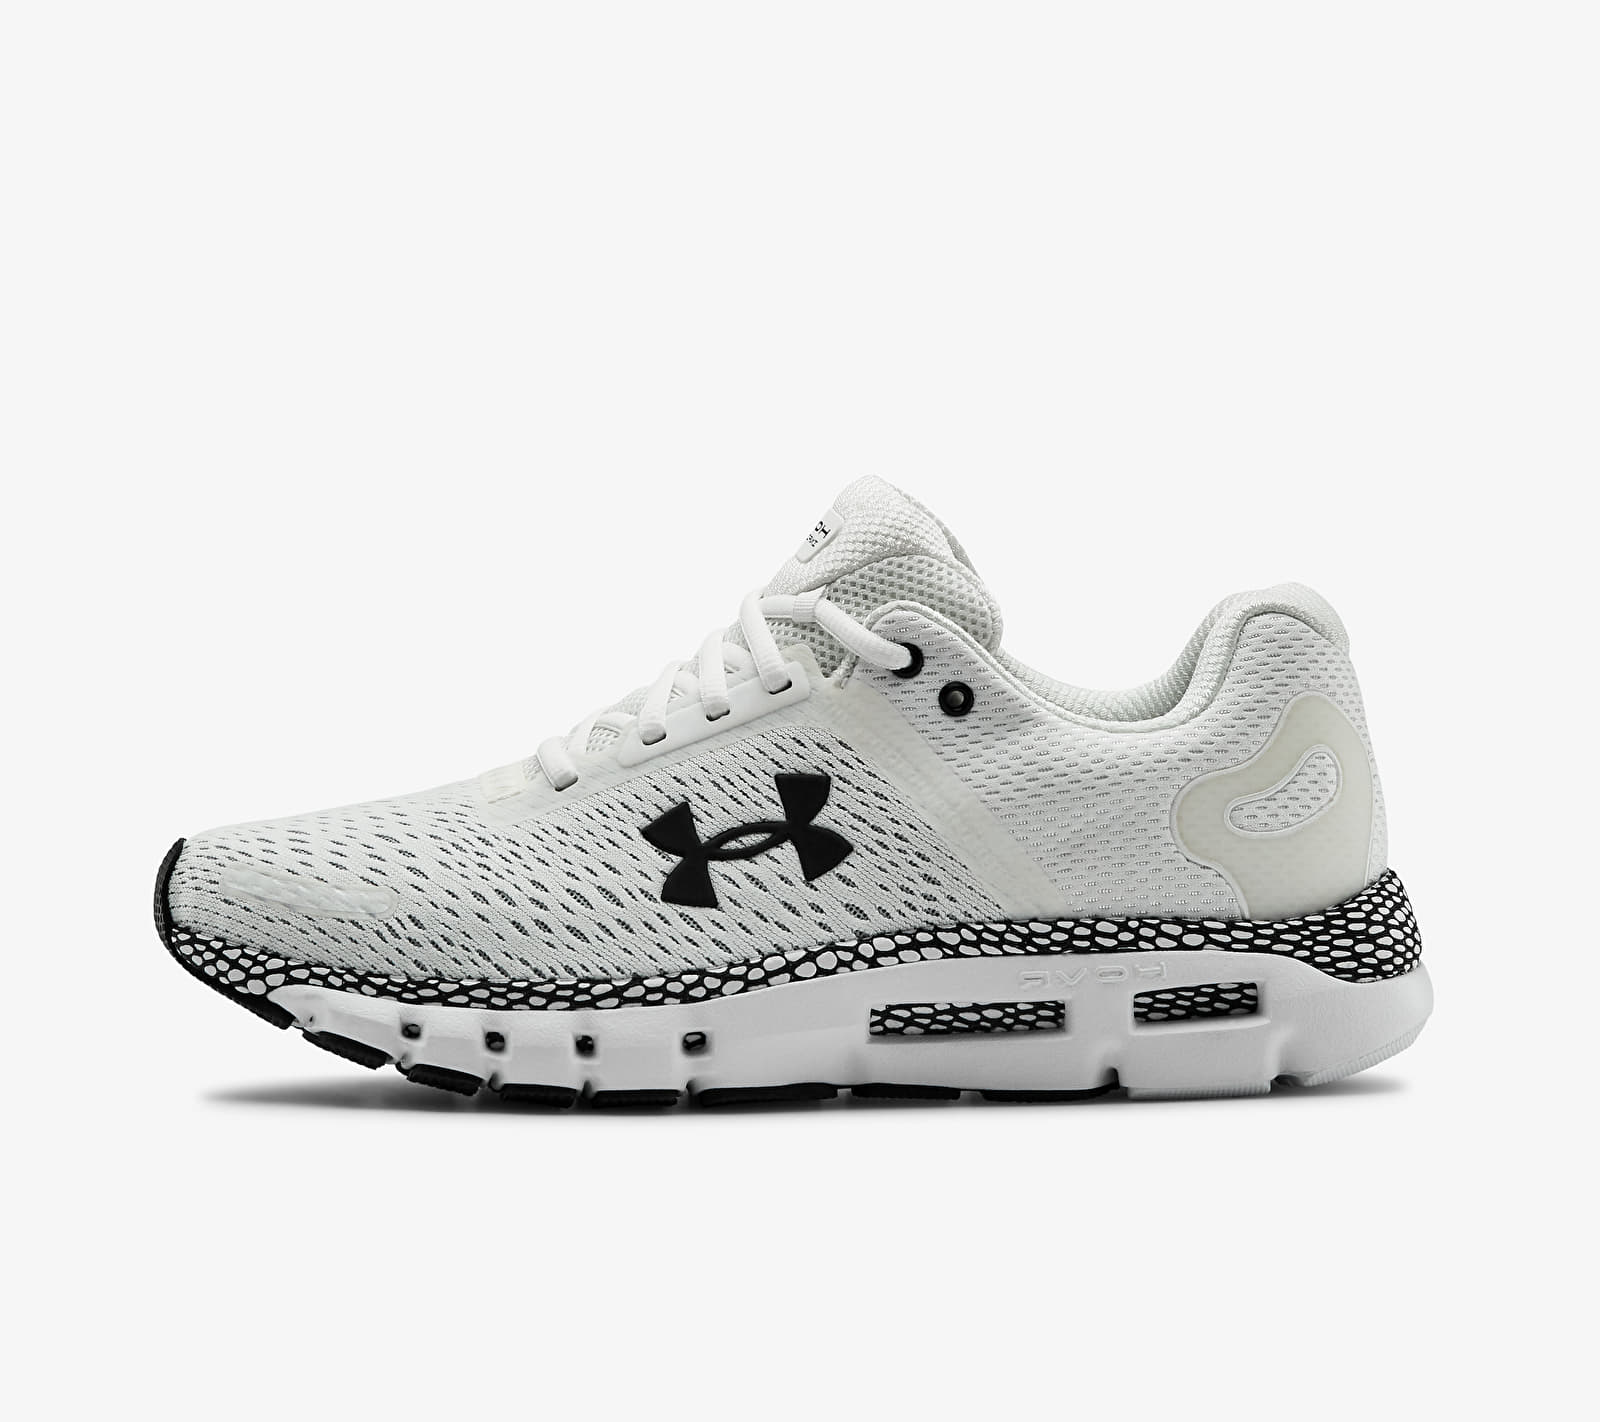 Under Armour W HOVR Infinite 2 White 3022597-101